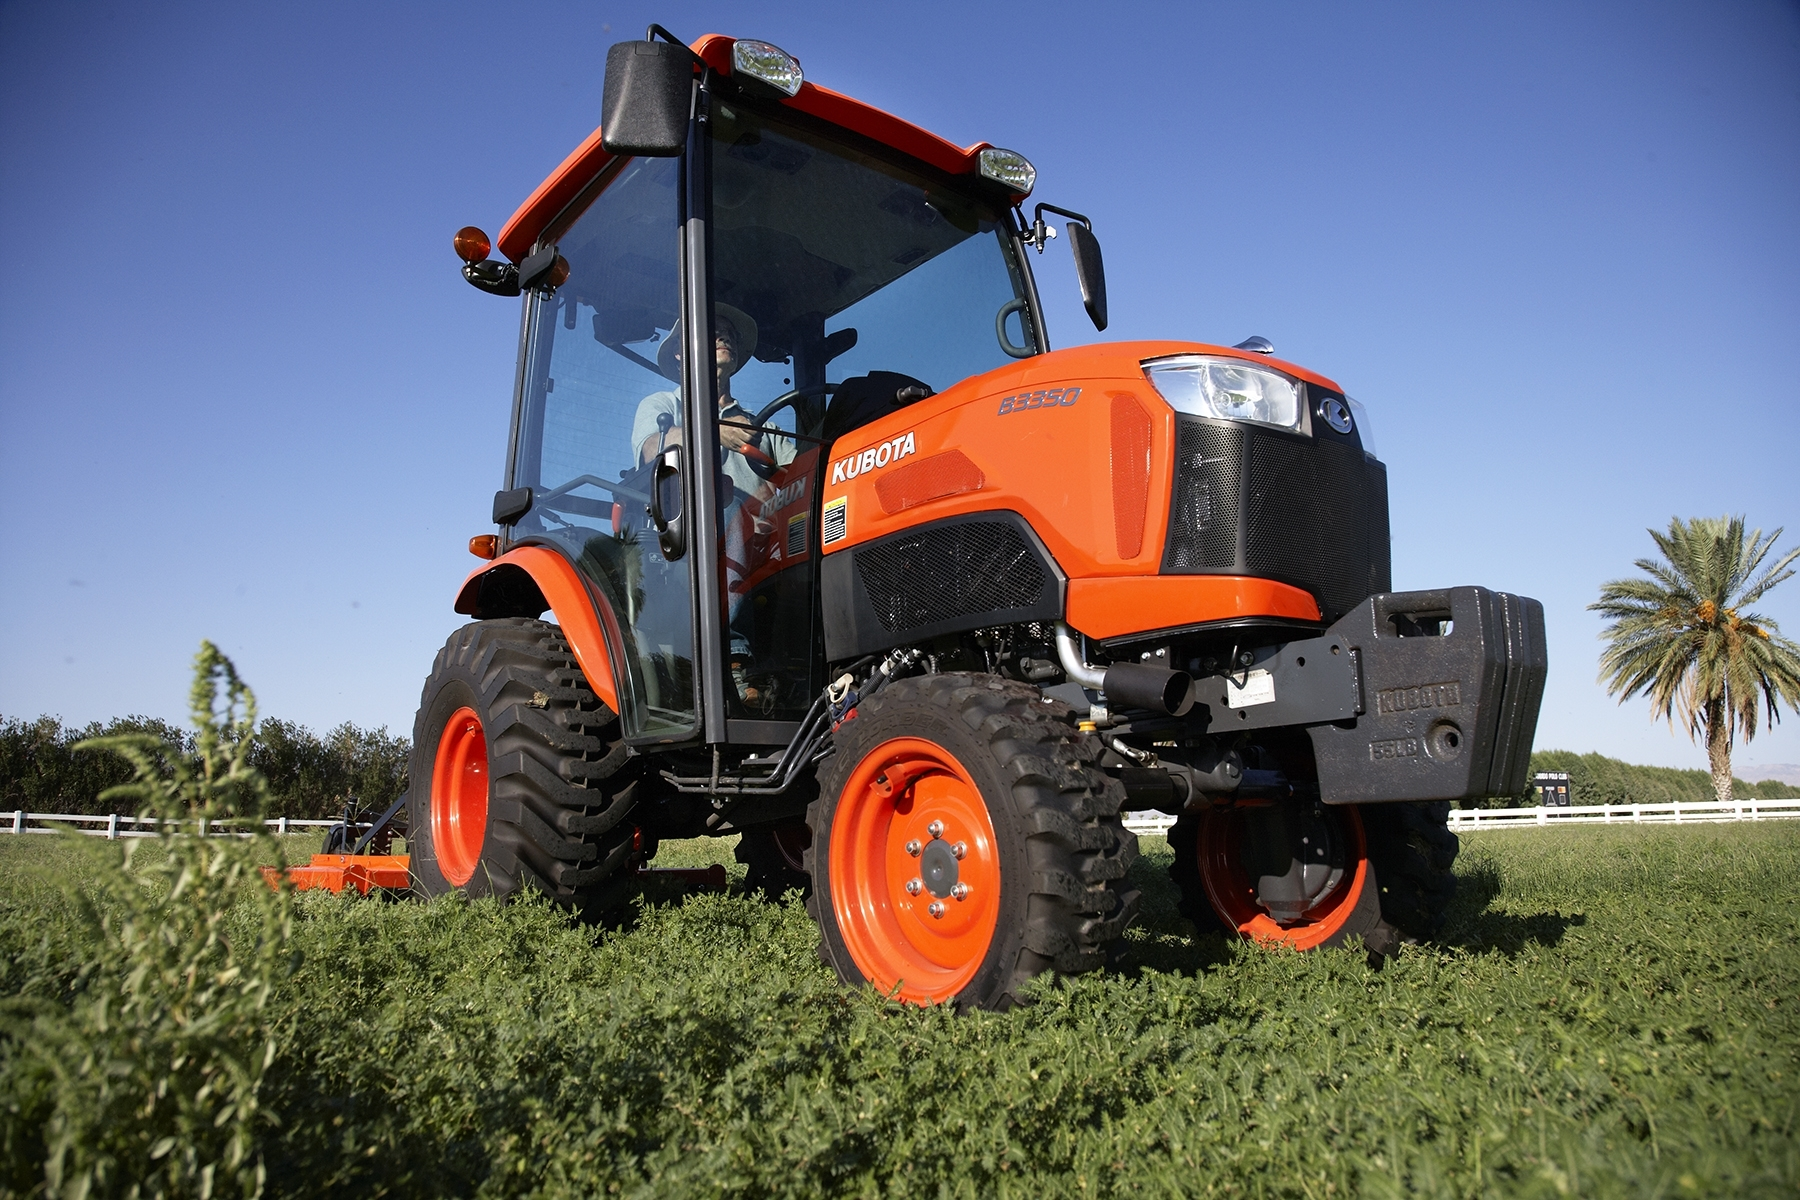 medium resolution of kubota unveils new b50 series tractors with factory integrated cabs ferrari electrical wiring diagram electrical wiring diagram kubota b2650